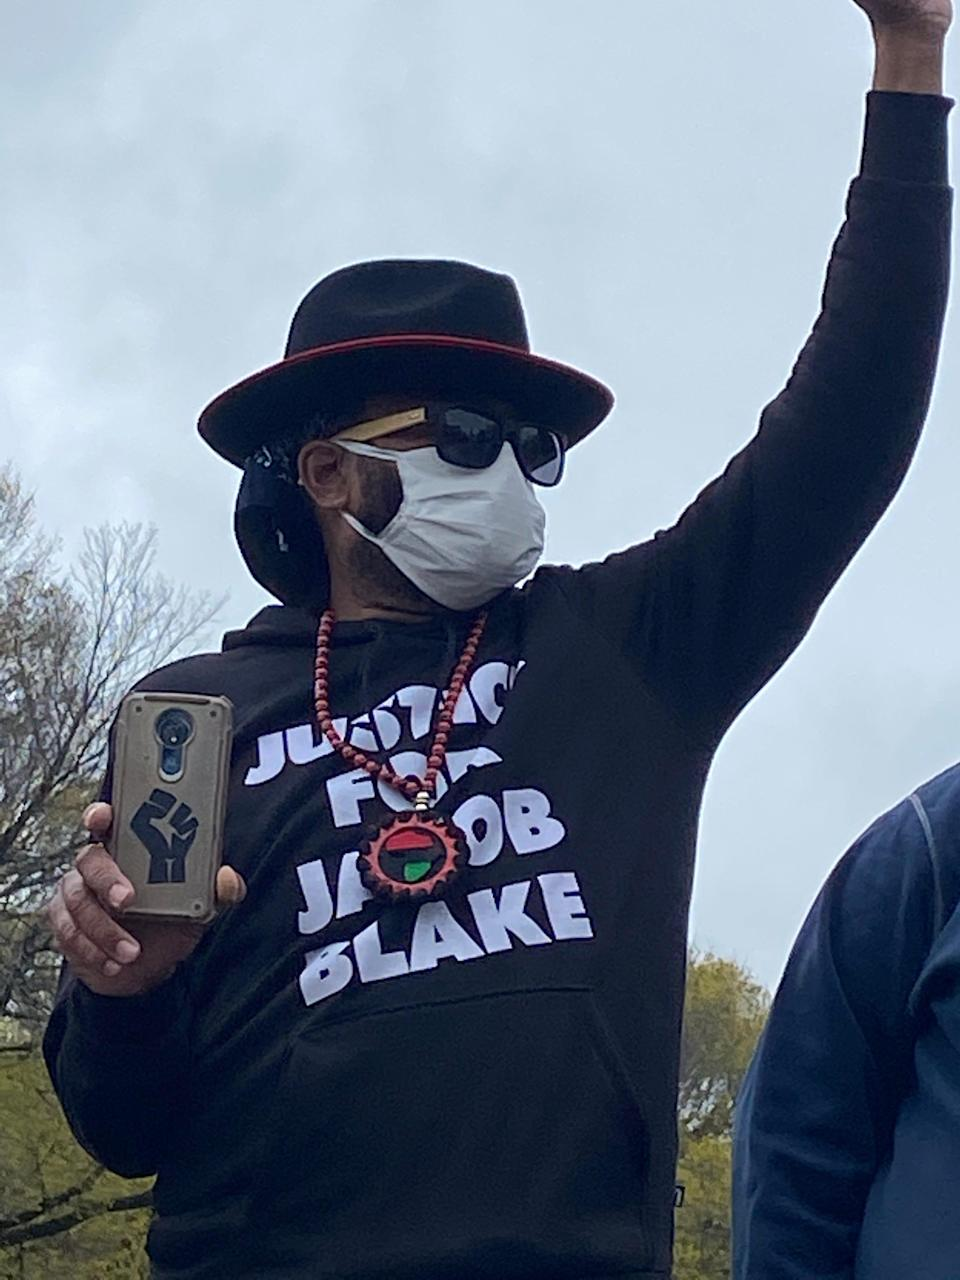 a man with a mask and a hat and a sweatshirt that says justice for jacob blake raises his fist